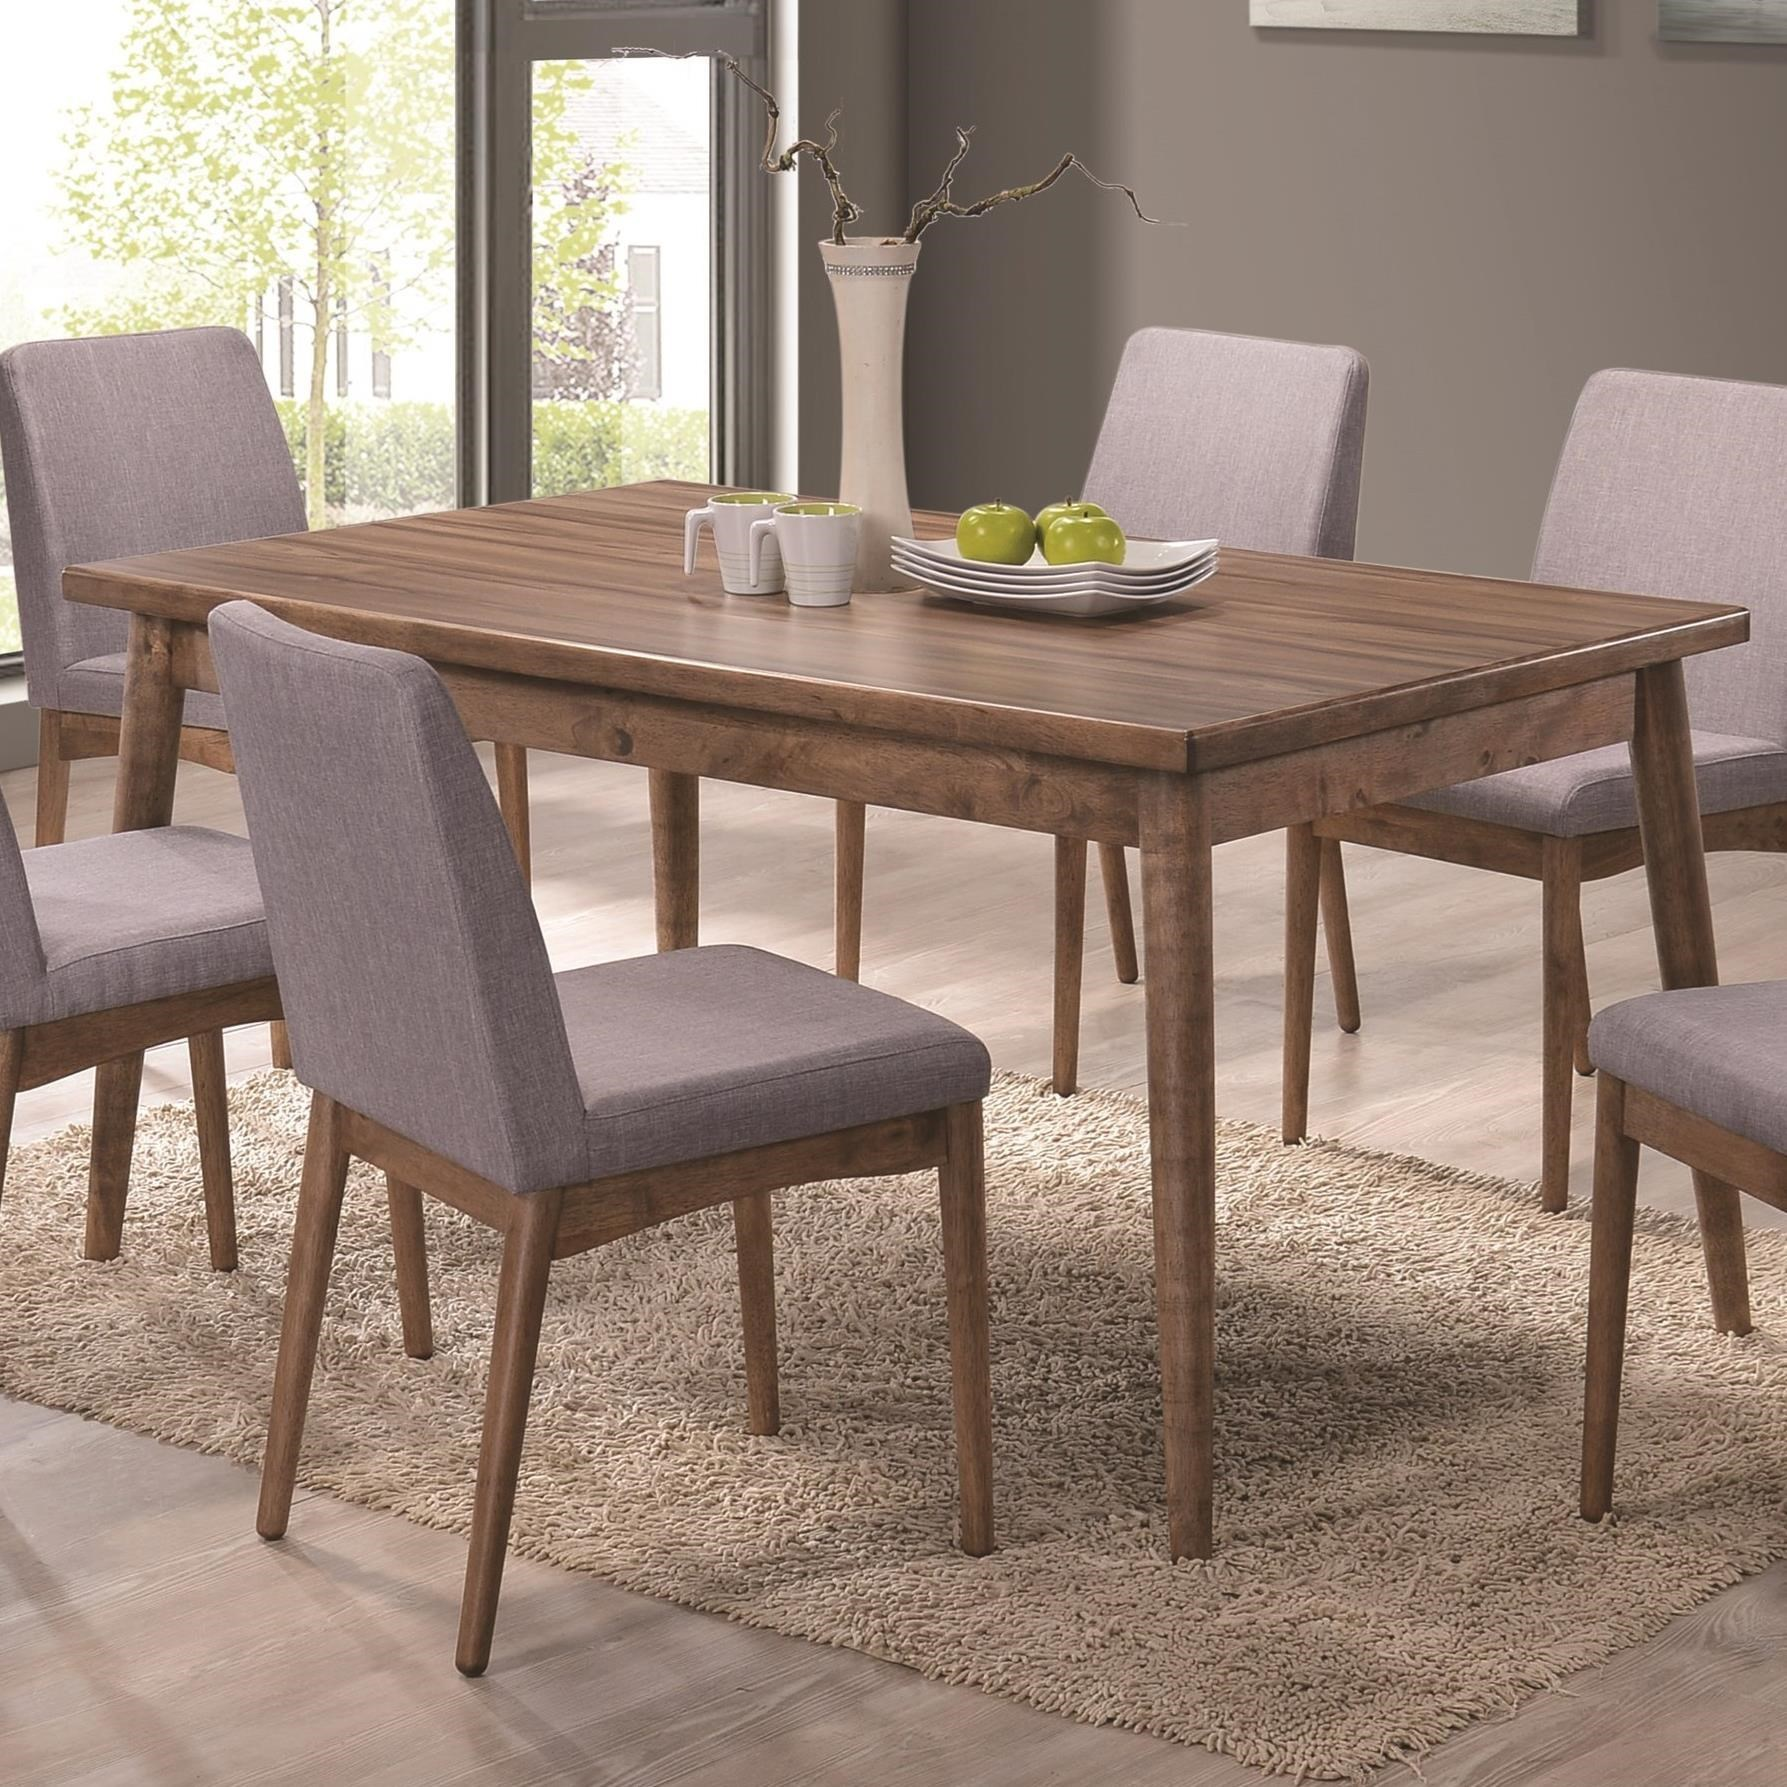 Coaster PasquilDining Table; Coaster PasquilDining Table